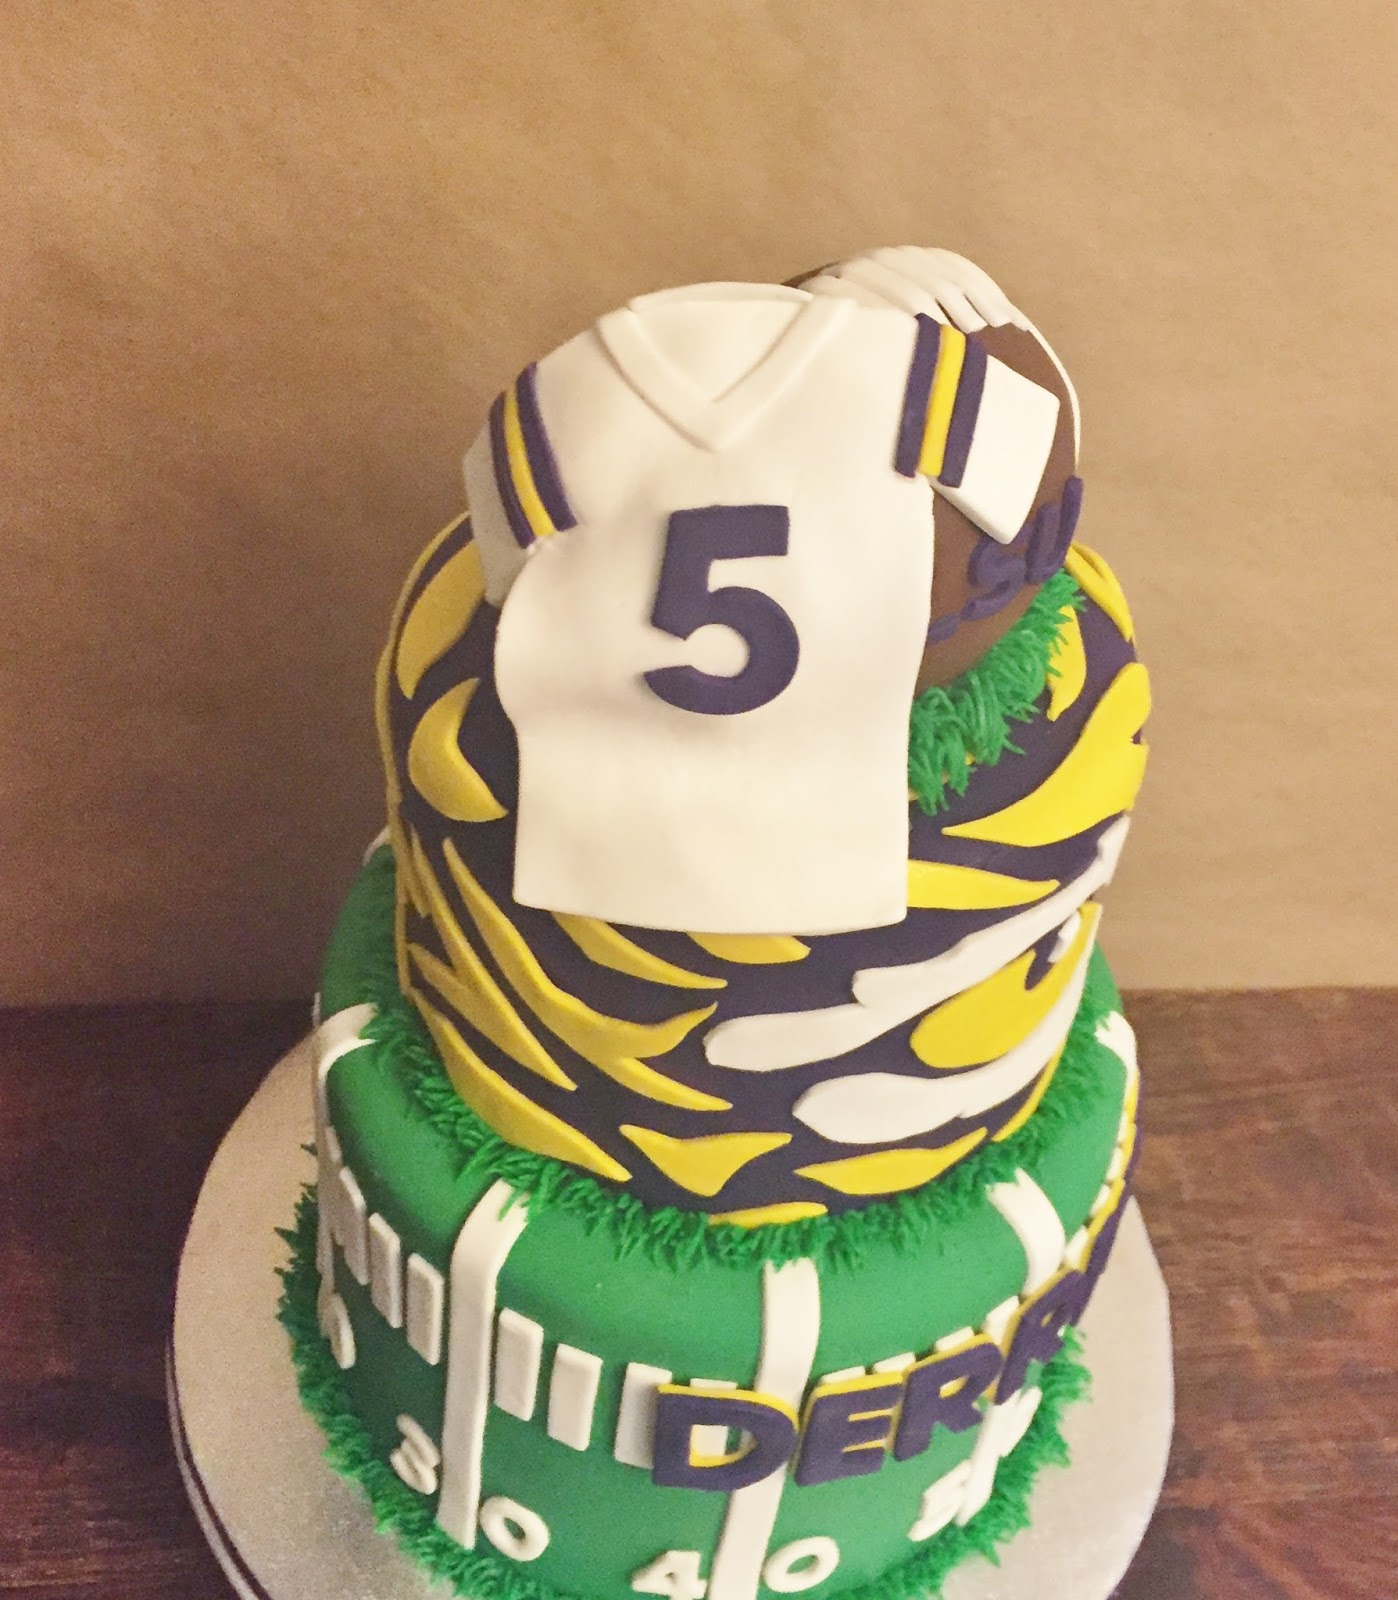 Magnificent Cakes By Mindy Lsu Tigers Football Cake 6 8 Personalised Birthday Cards Veneteletsinfo